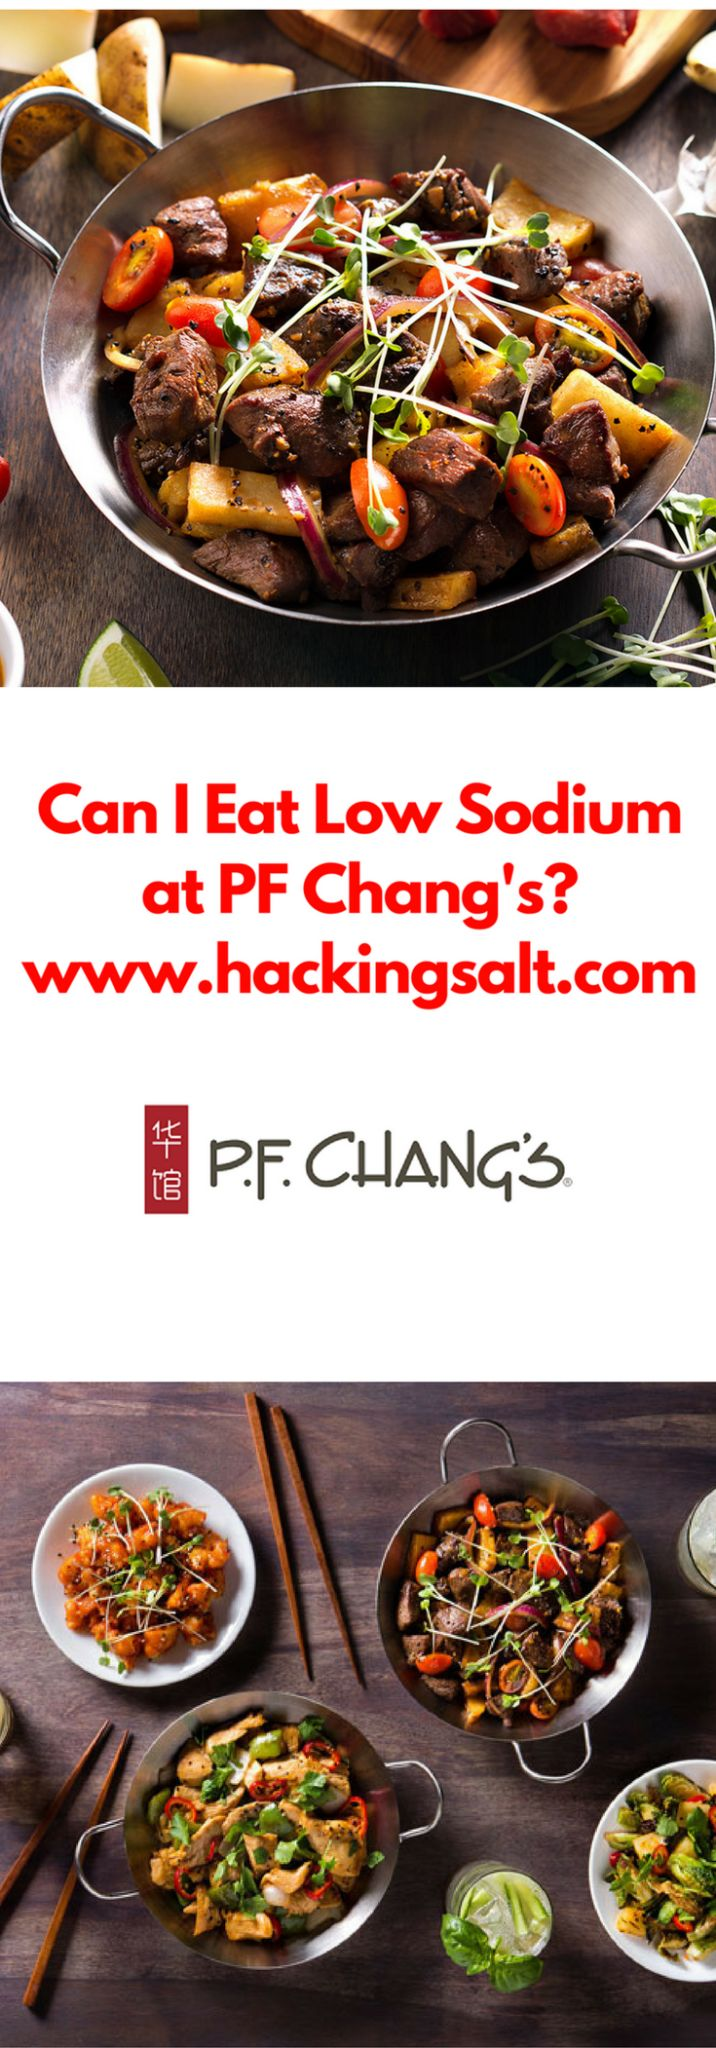 Can I Eat Low Sodium at PF Changs We have discussed before how hard it is to find low sodium Asian Dishes. Restaurants make that task much harder. Asian cuisine and sauces are all based upon their base foundation of soy sauce. Soy sauce is very high in sodium, even when it is touted as...Read More »